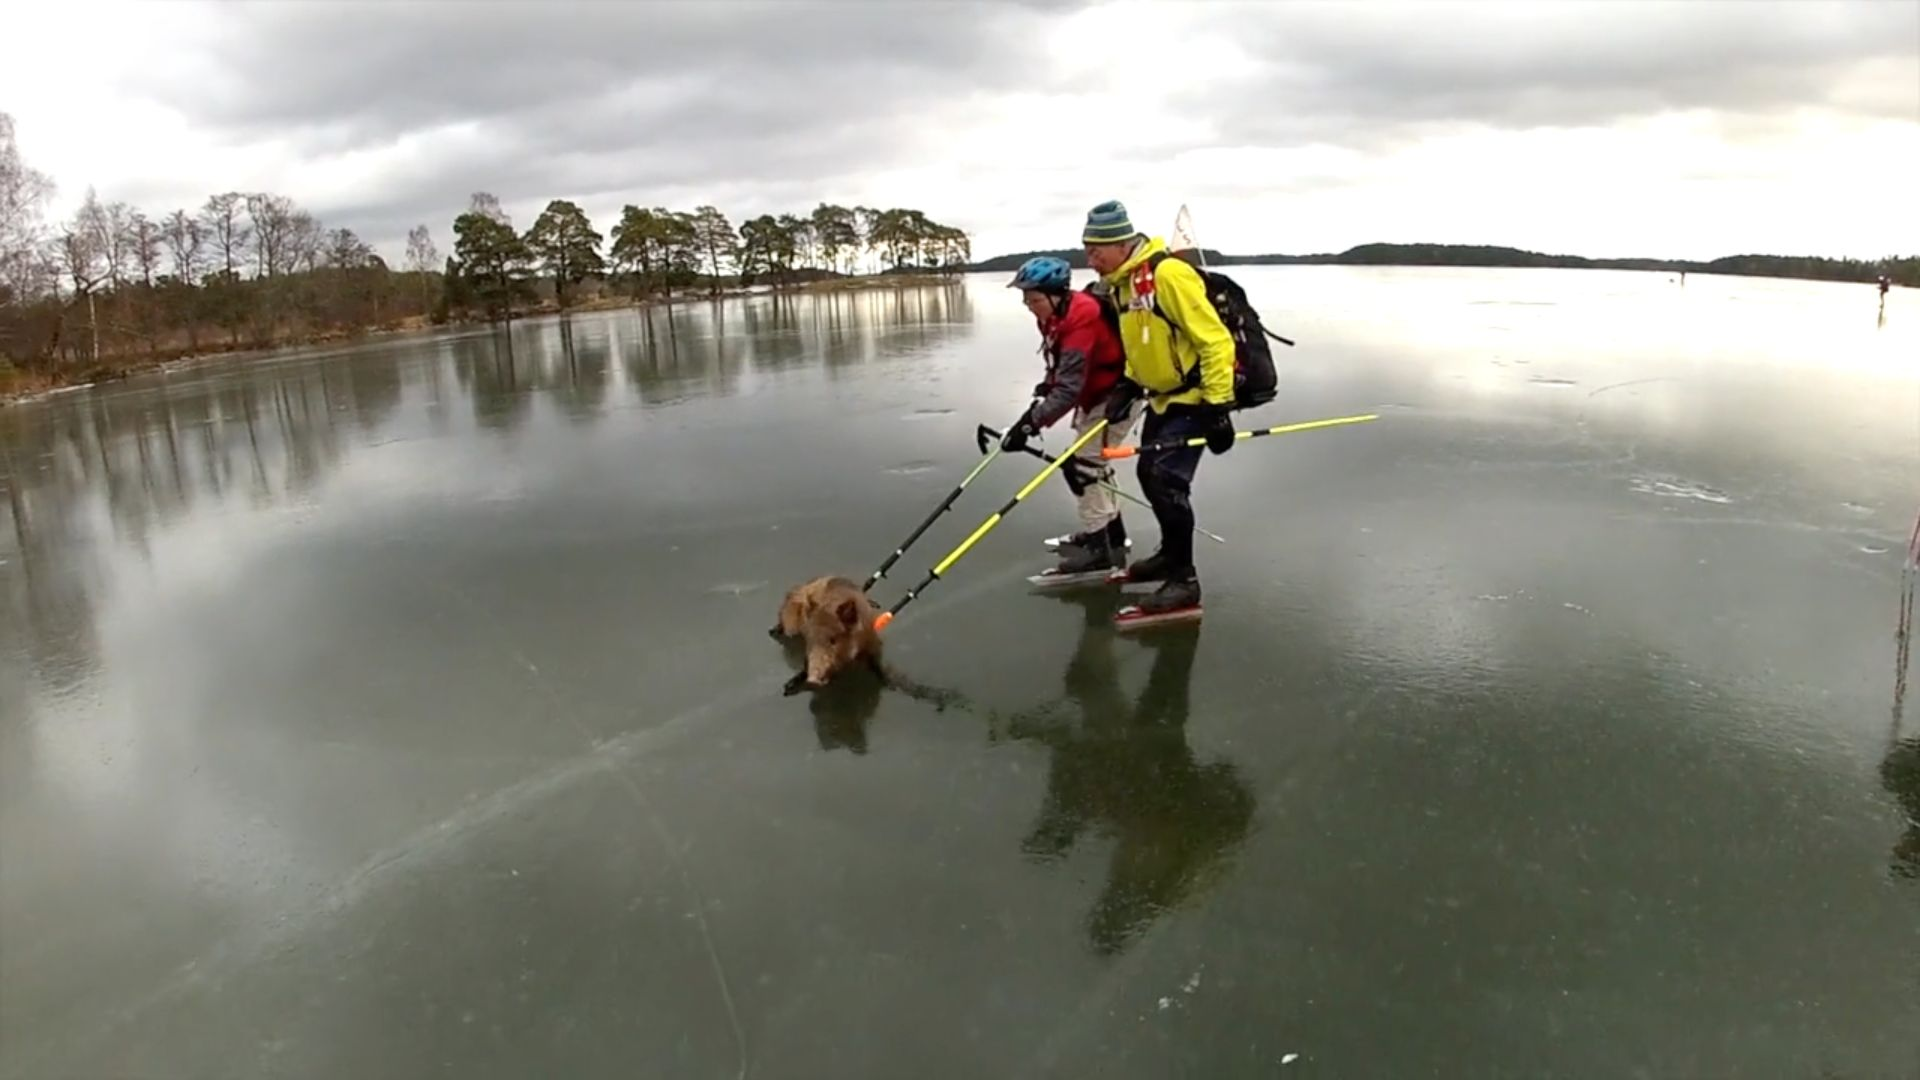 A group of ice skaters are seen sliding a wild bore off a frozen Swedish lake.